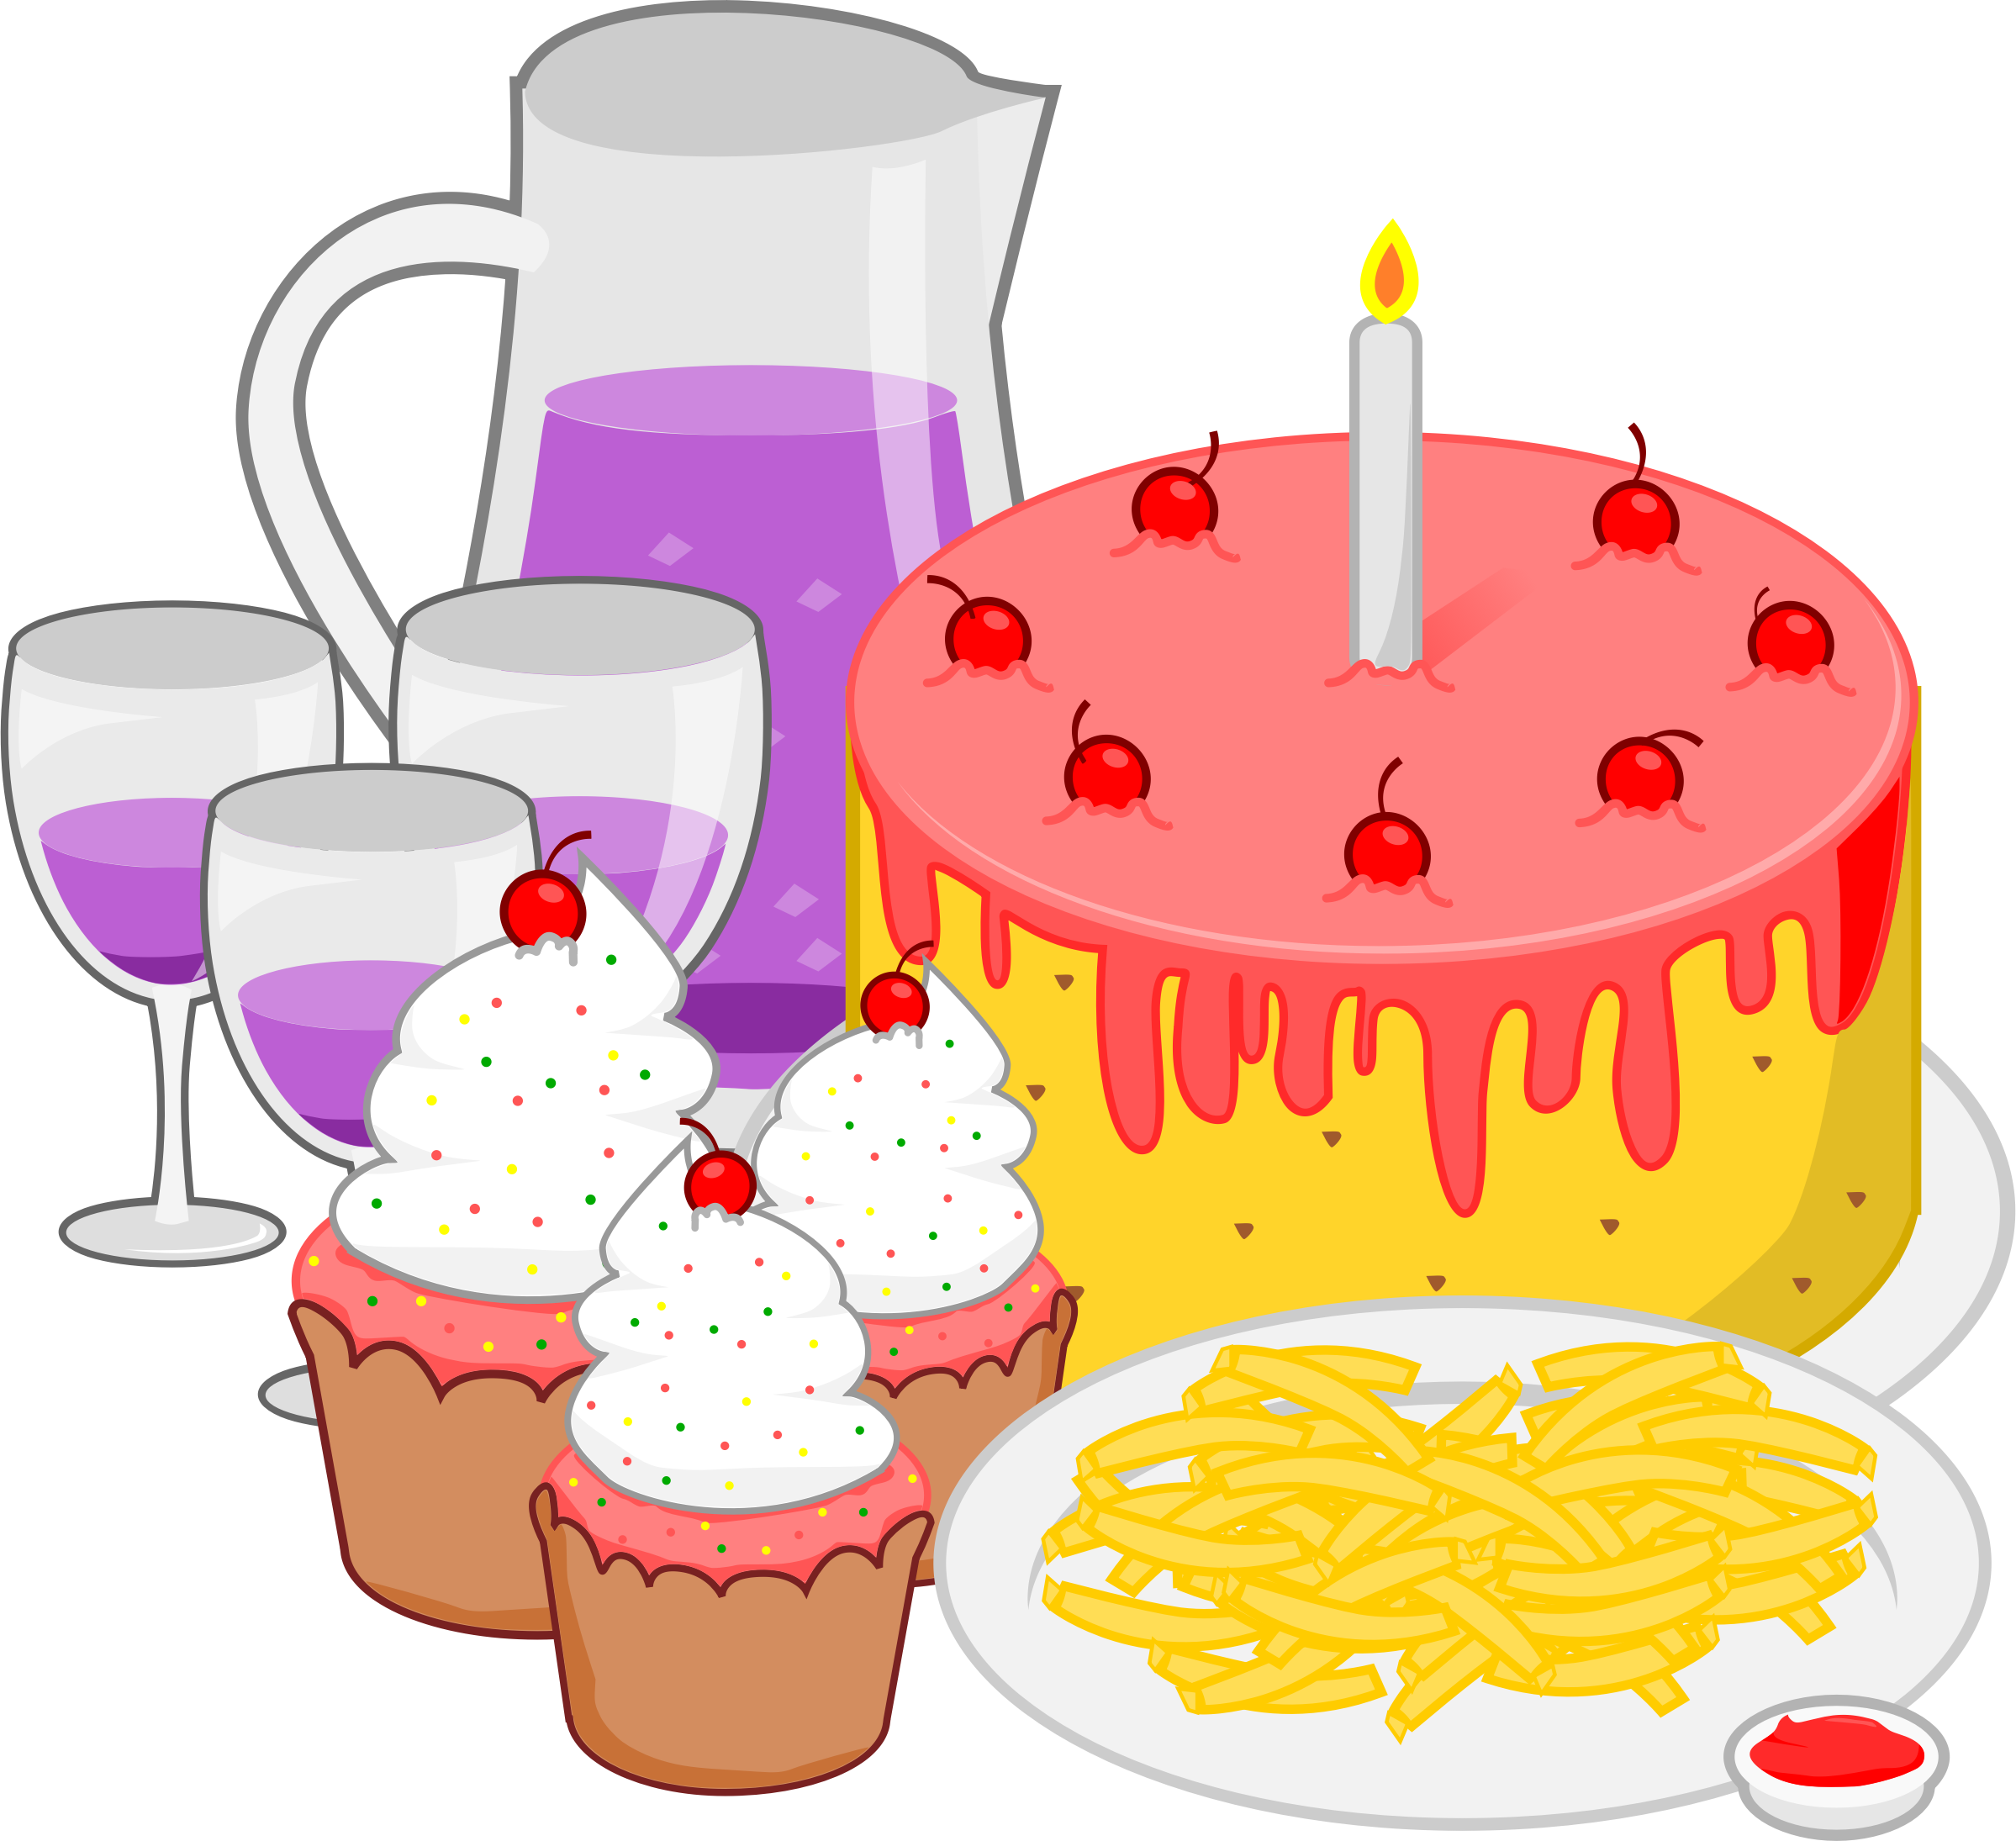 Apple celebration clipart clipart black and white library Celebration clipart food FREE for download on rpelm clipart black and white library